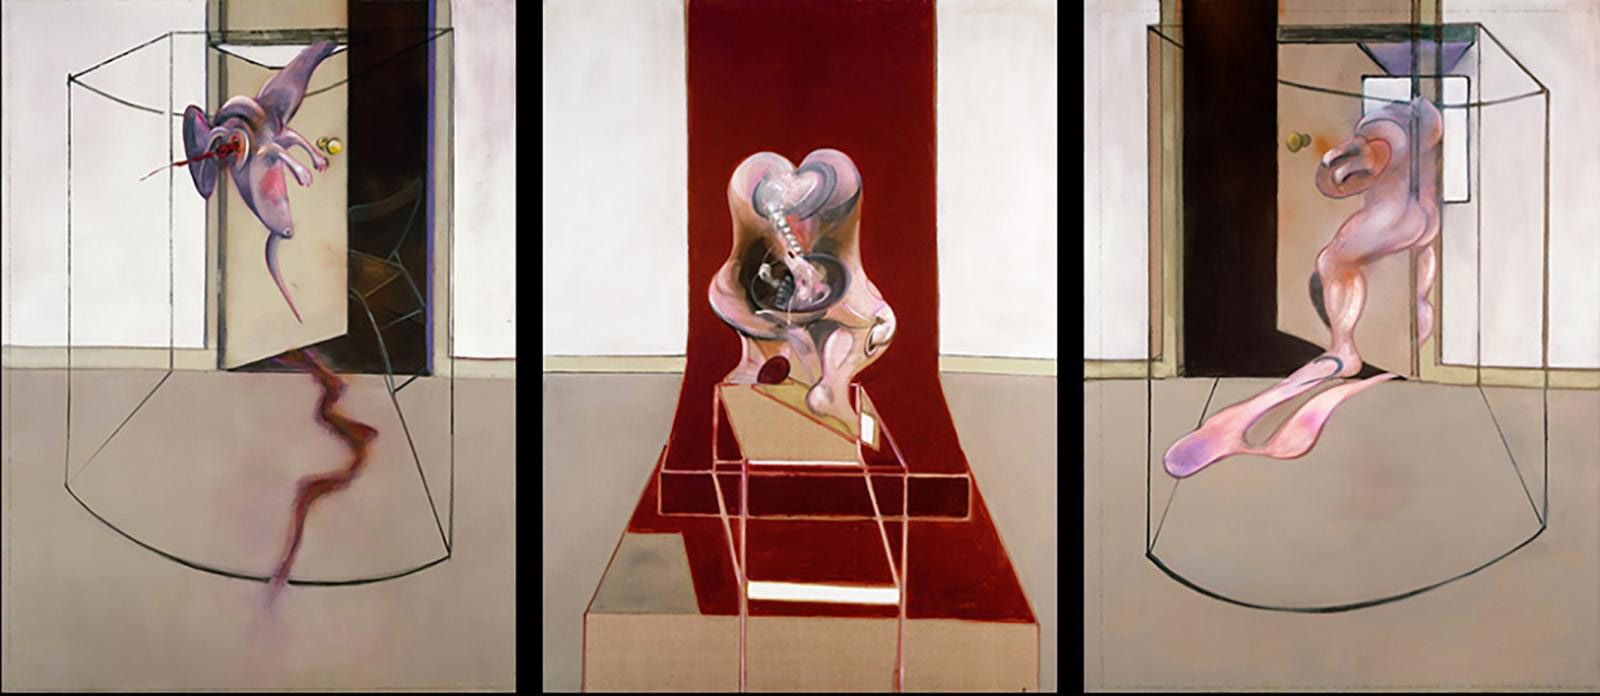 Francis Bacon's large triptych Inspired by the Oresteia of Aeschylus (1981) sold for $84.55 M in New York on June 29.